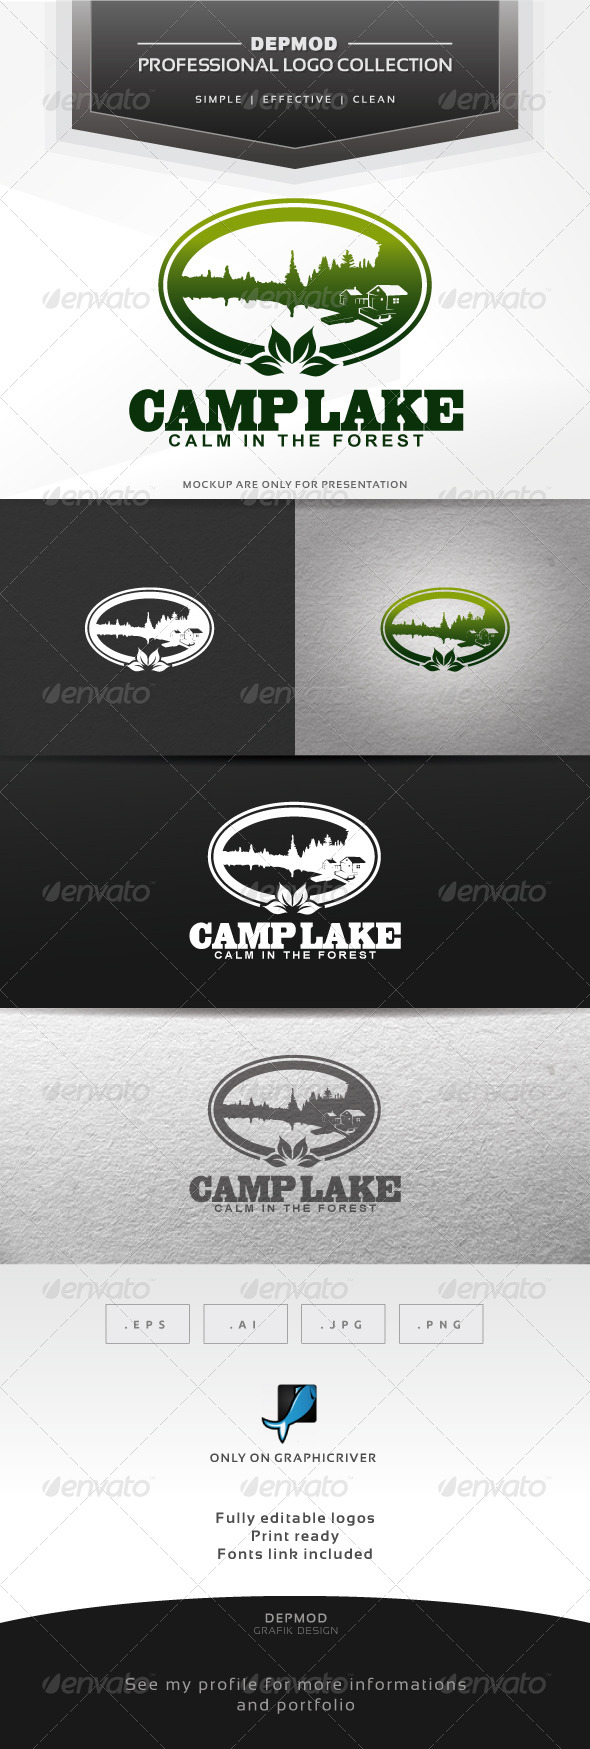 Camp Lake Logo - Nature Logo Templates